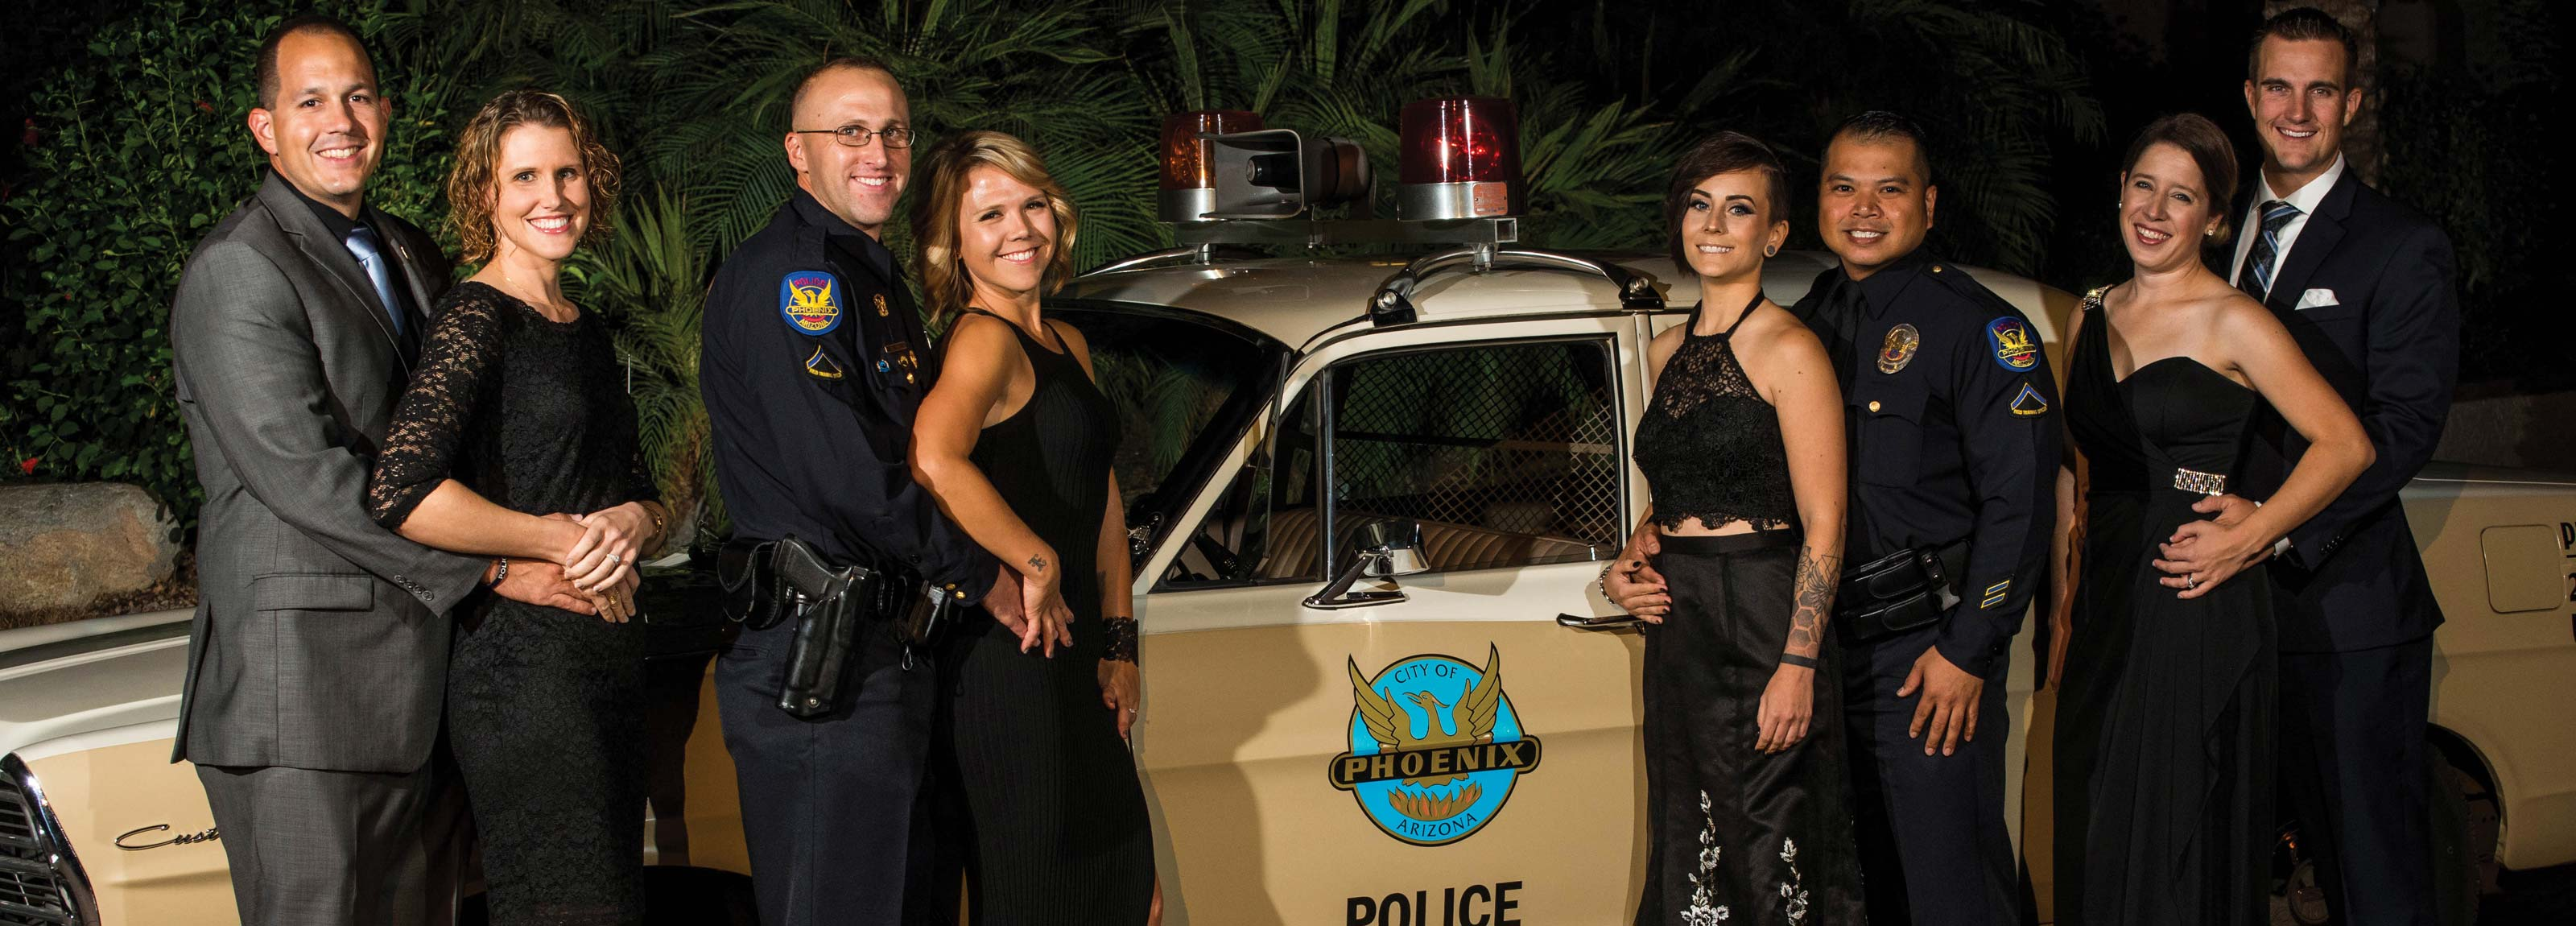 Police Officers' Ball